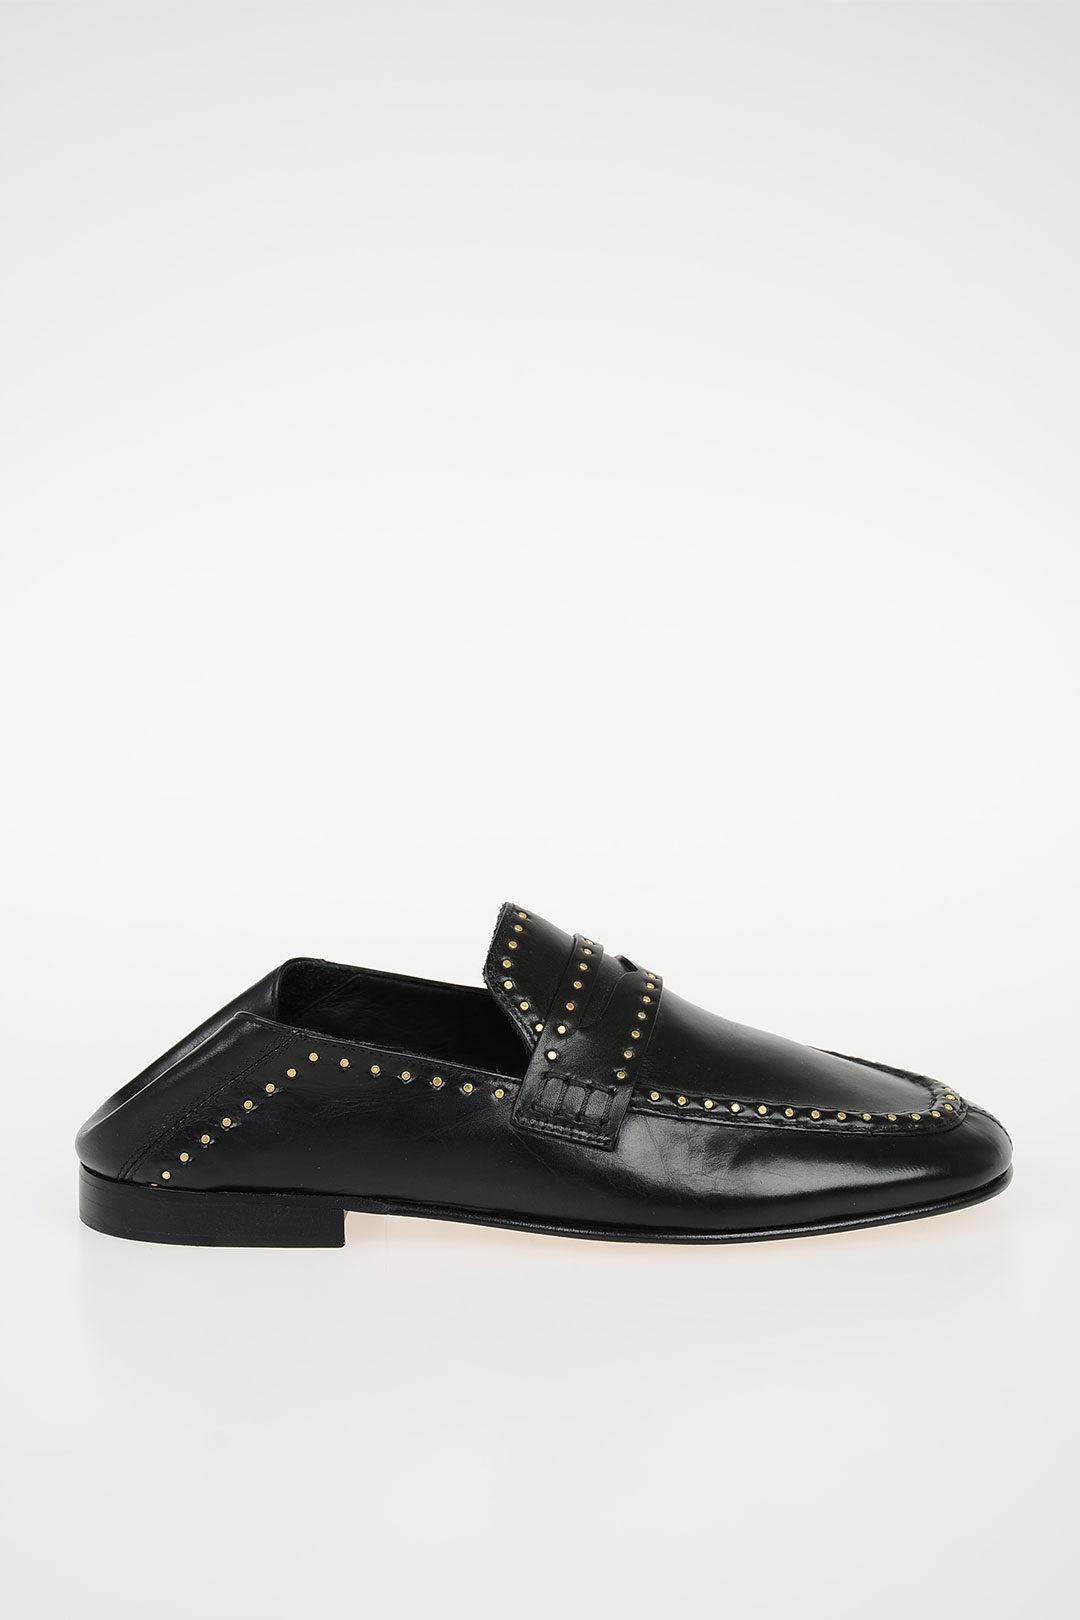 51c878f9bc0 Isabel Marant Studded Leather FEZZY Loafers women - Glamood Outlet